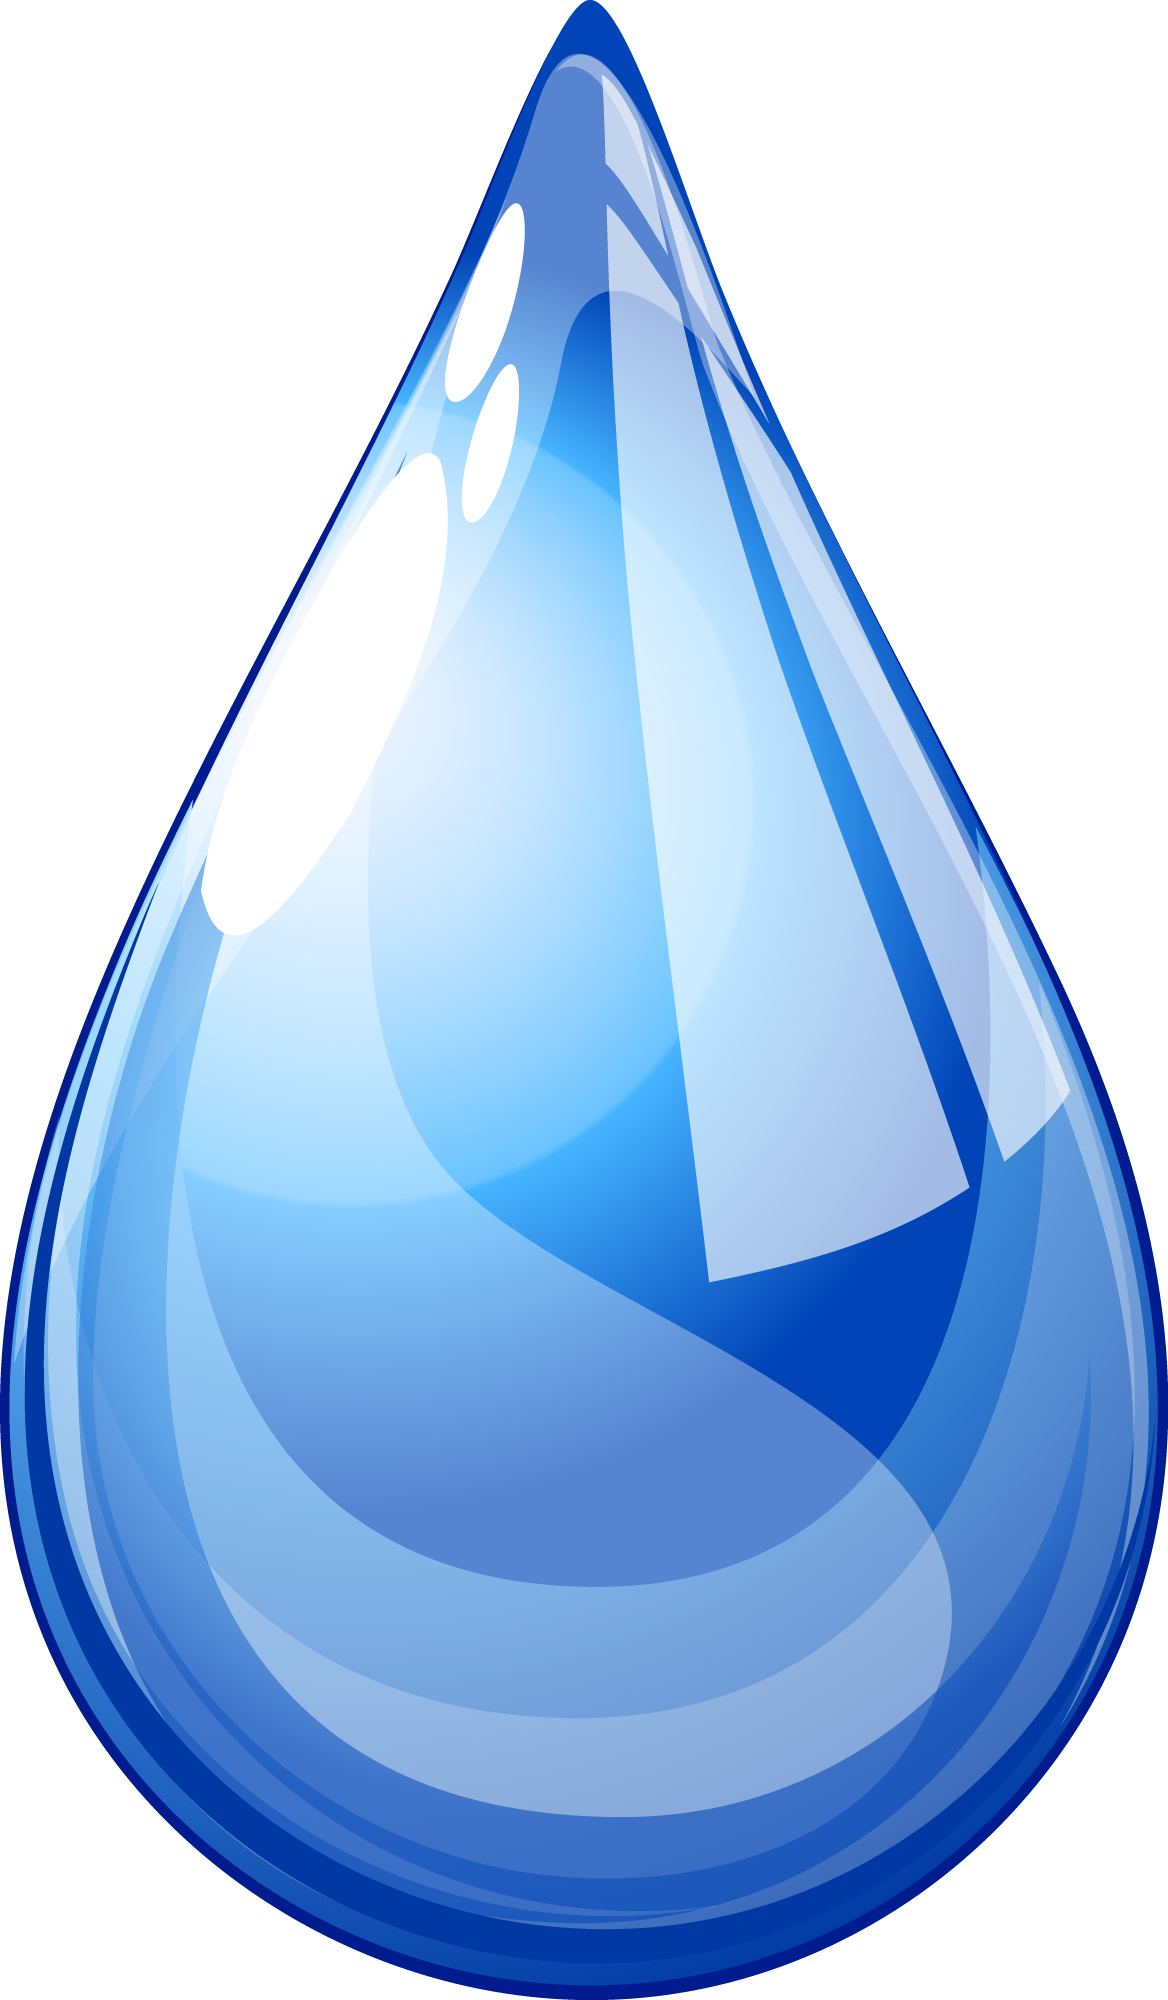 Water clipart polluted. Topic pollution did you